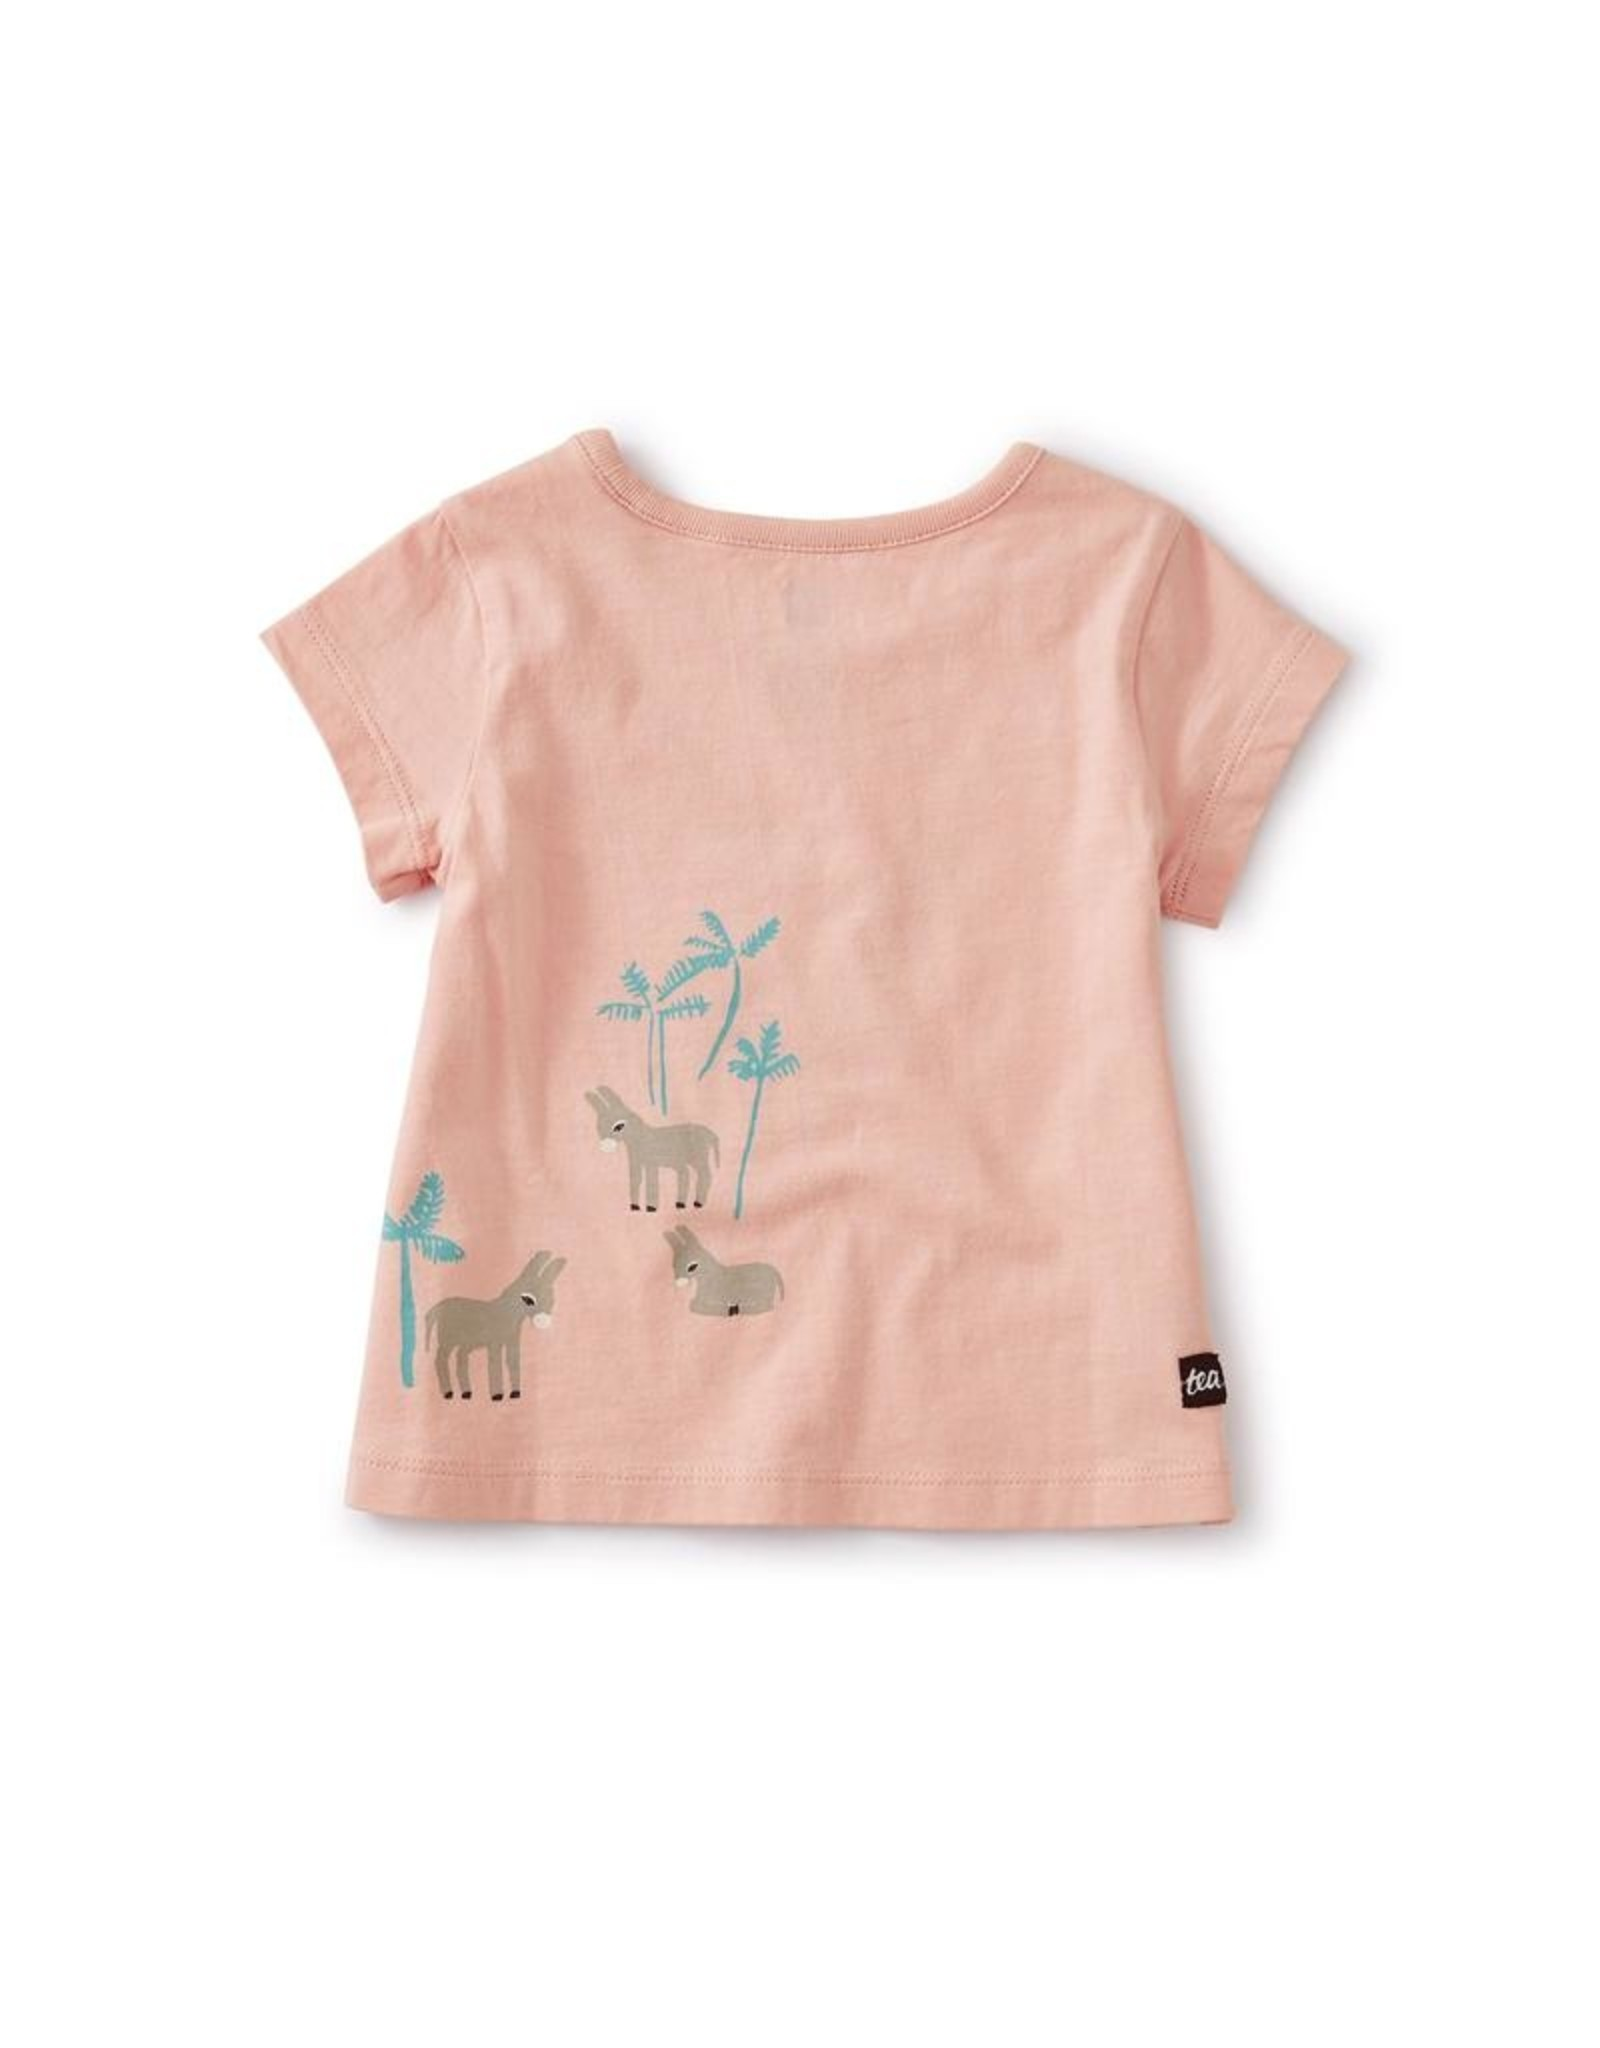 VAULT CLOTHES-Baby Girl BFF Tee